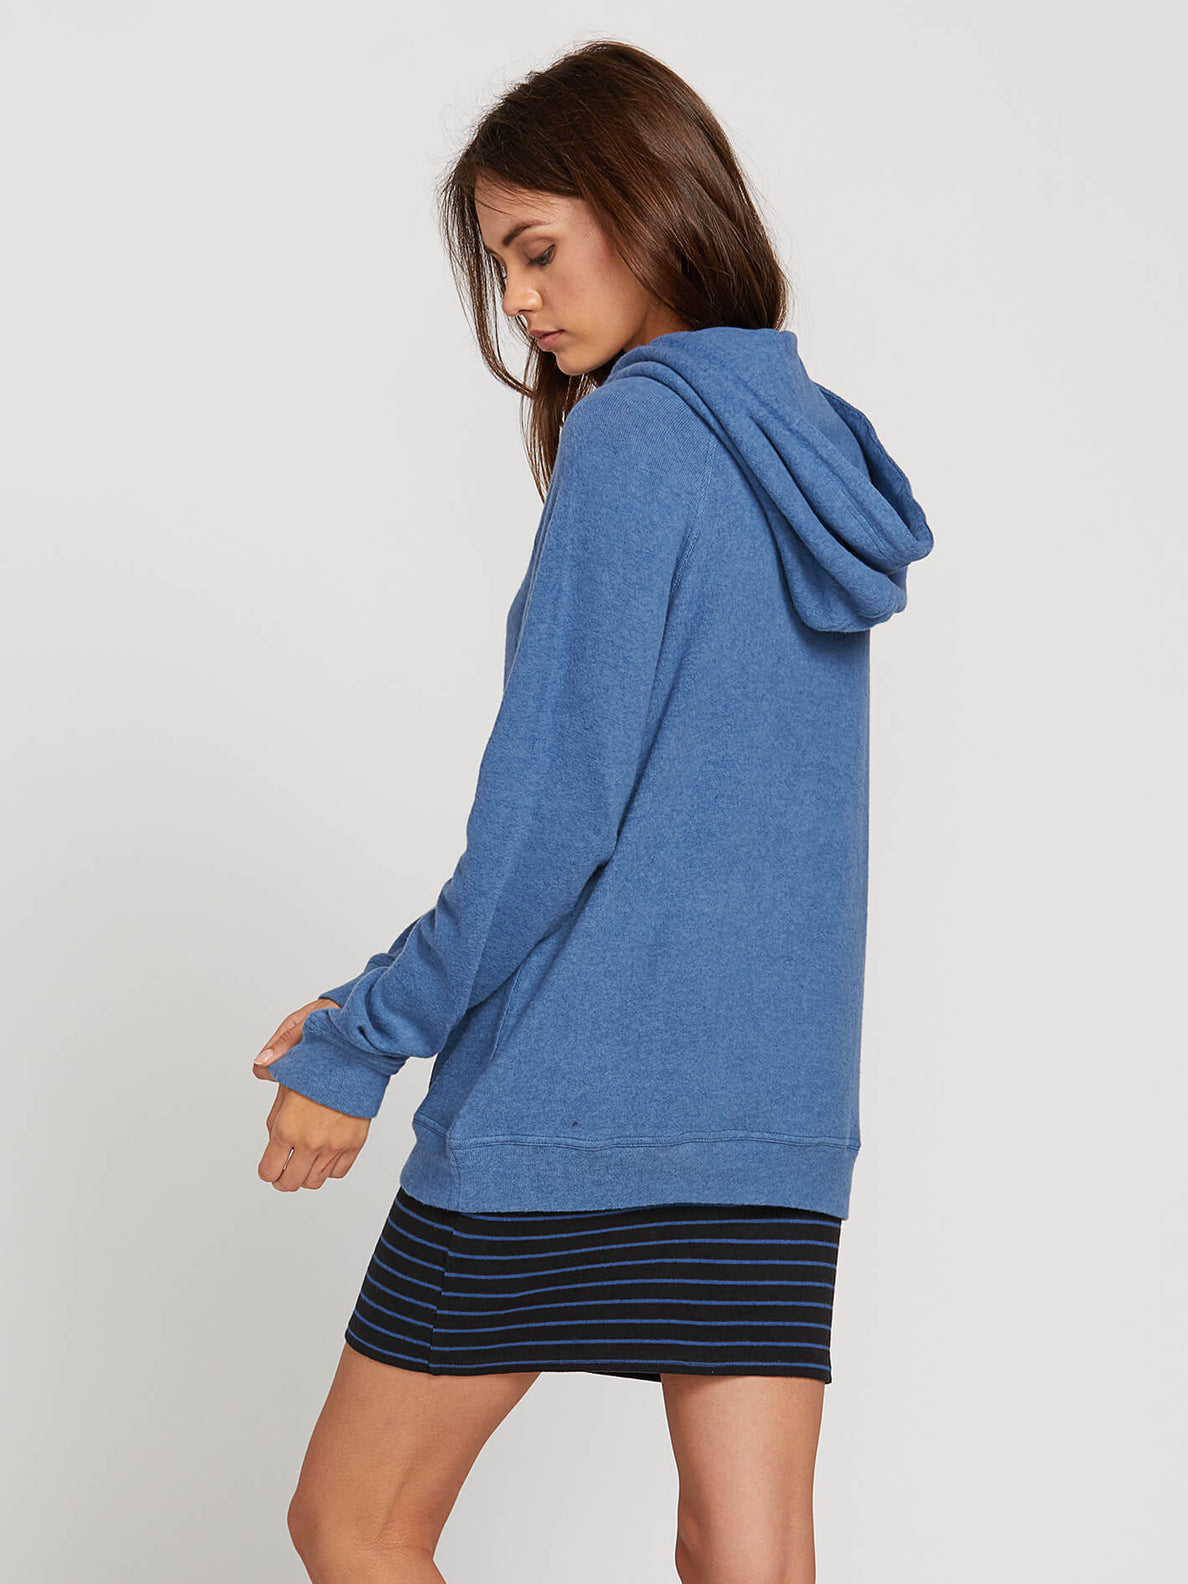 Lived In Lounge Hoodie In Blue Drift, Back View